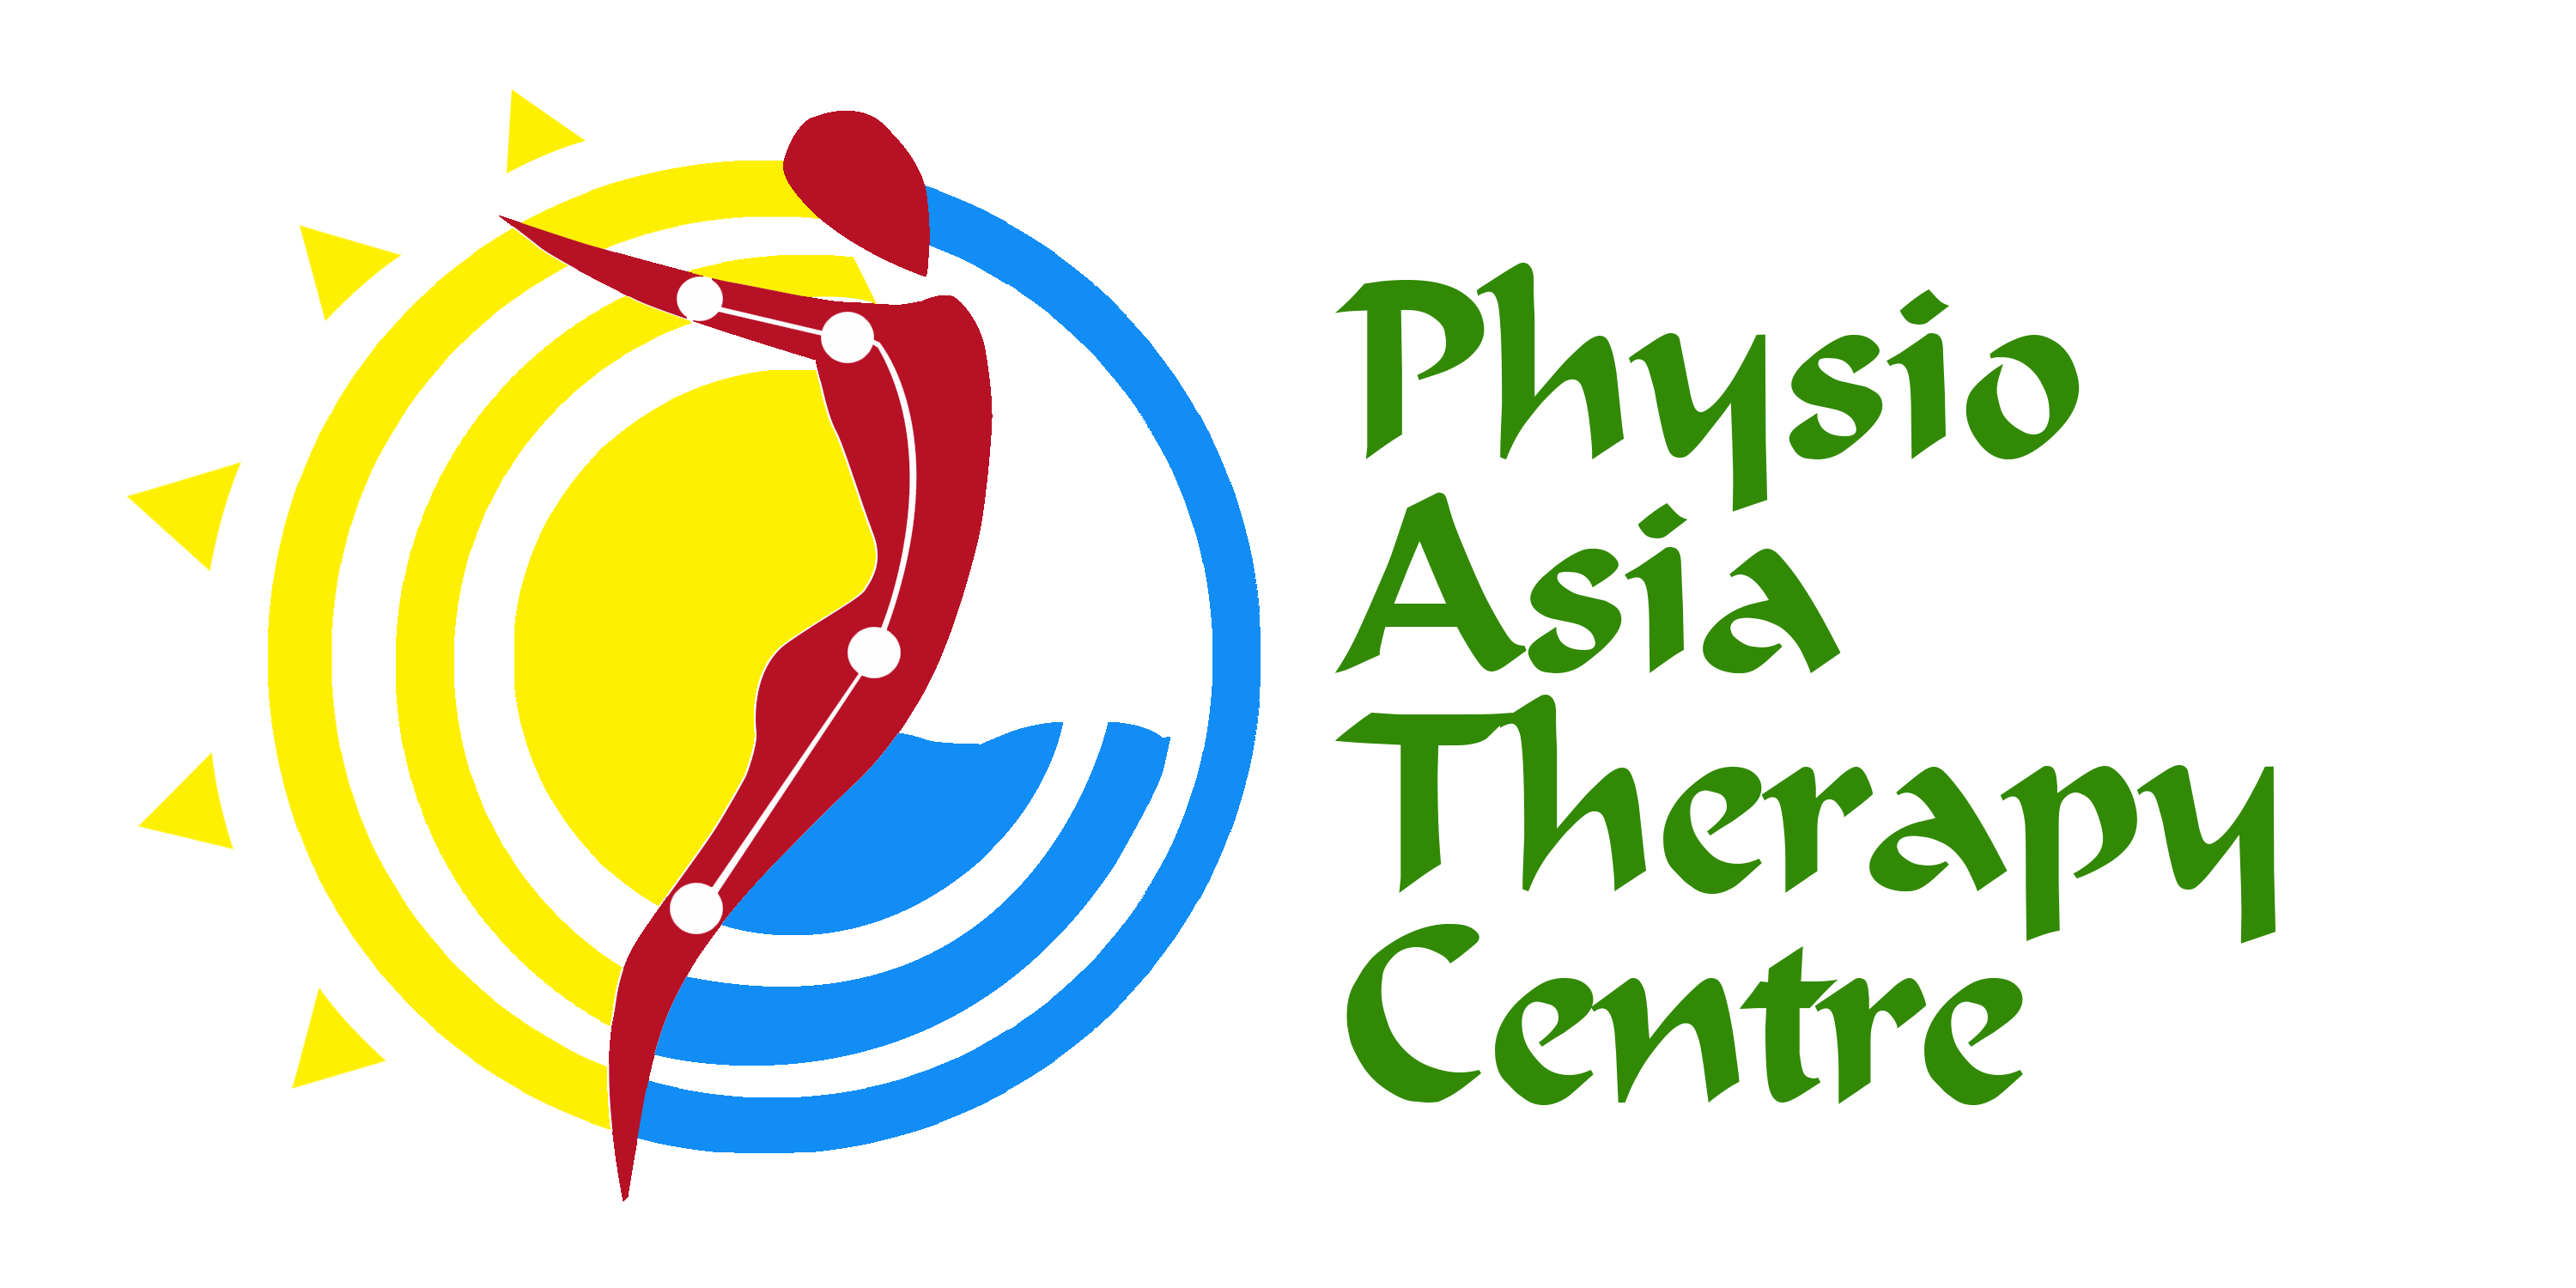 PhysioAsia Manila